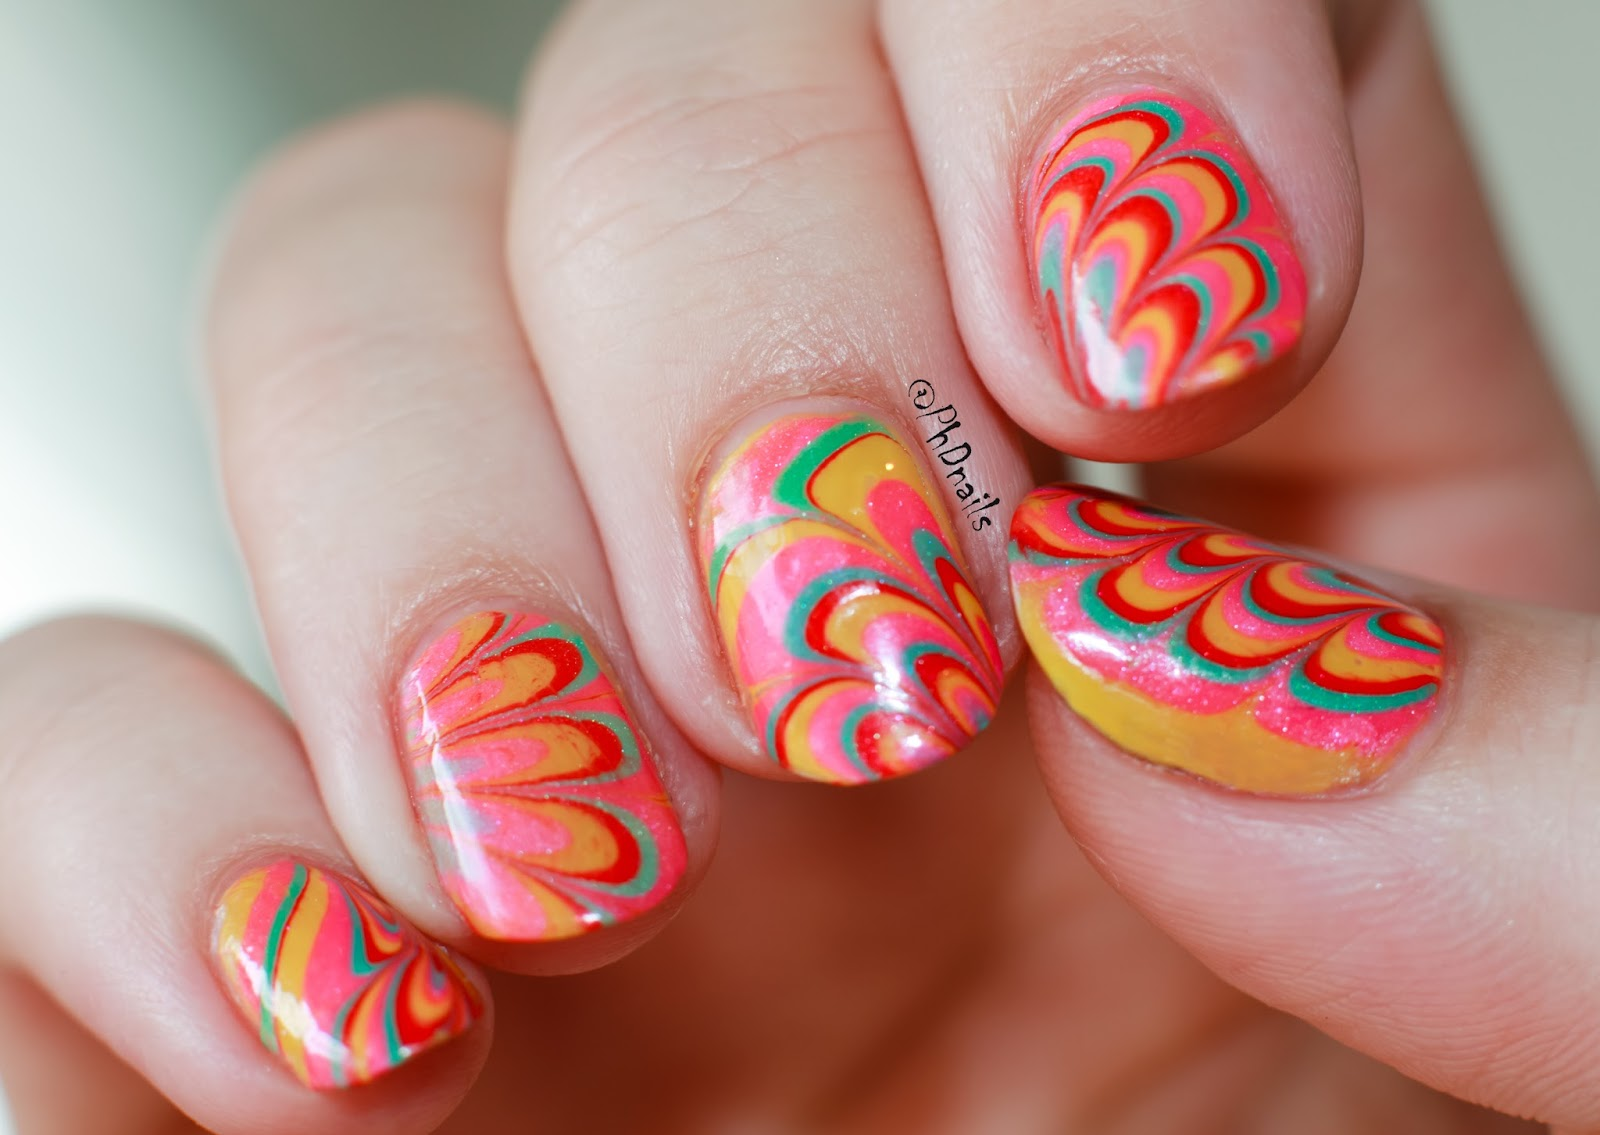 PhD nails: Water marble decals with neon Indie polish \